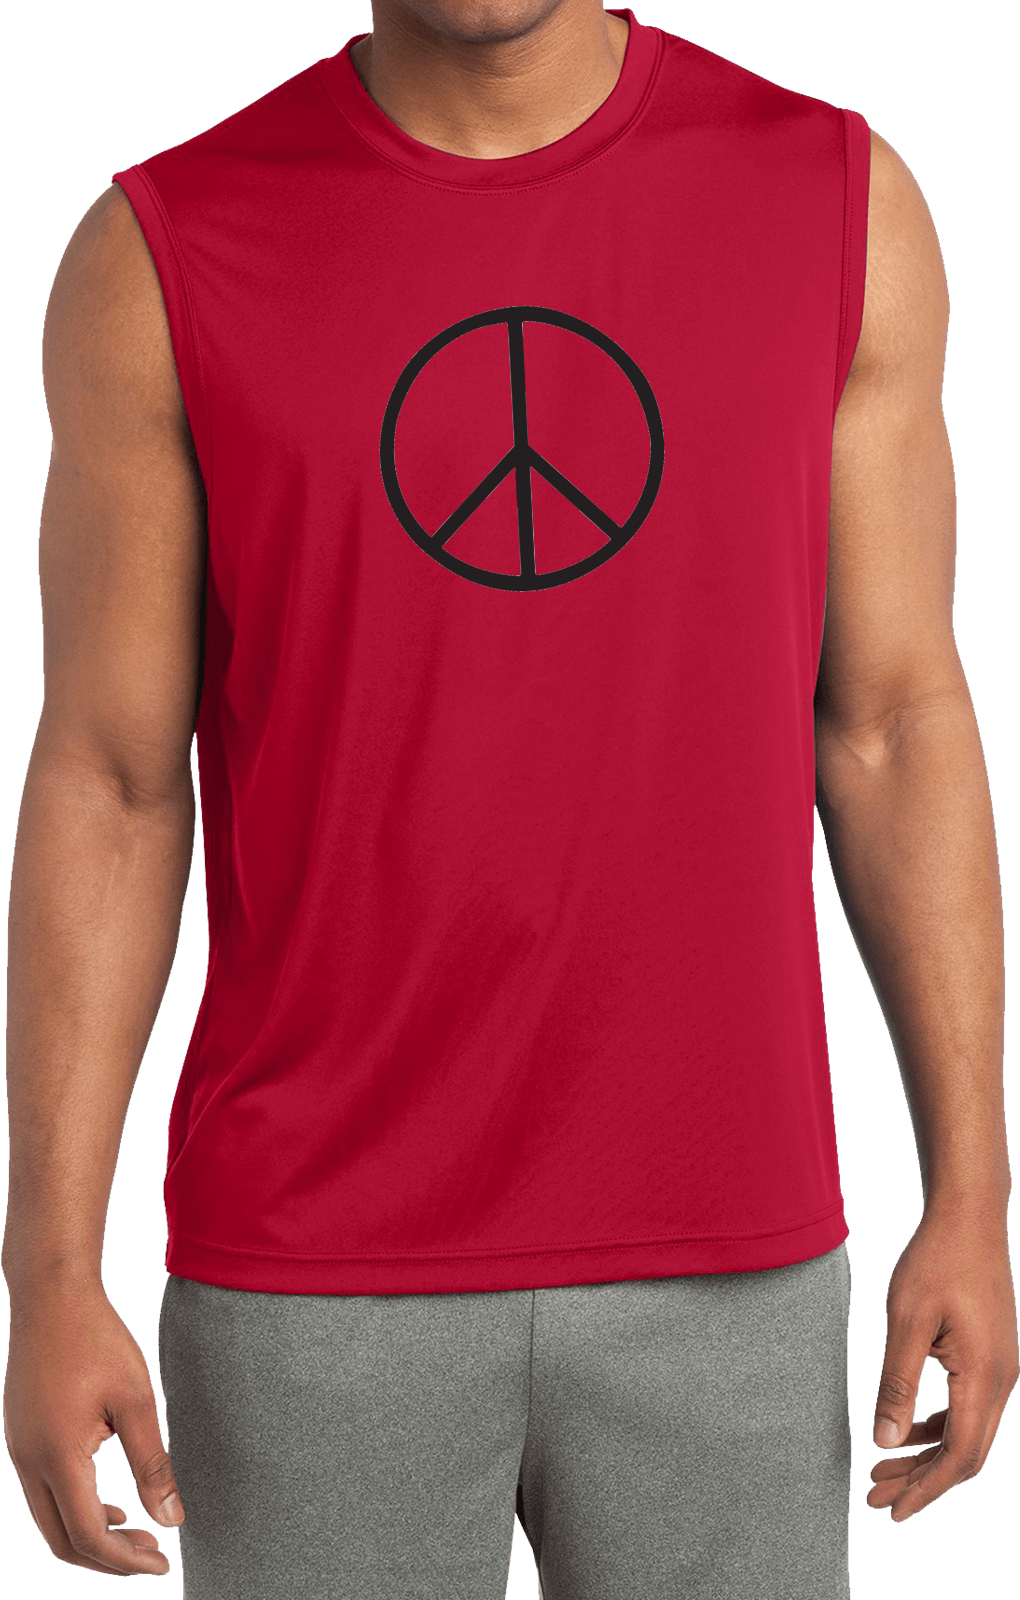 Mens shirt basic peace black sleeveless moisture wicking for Sweat wicking t shirts